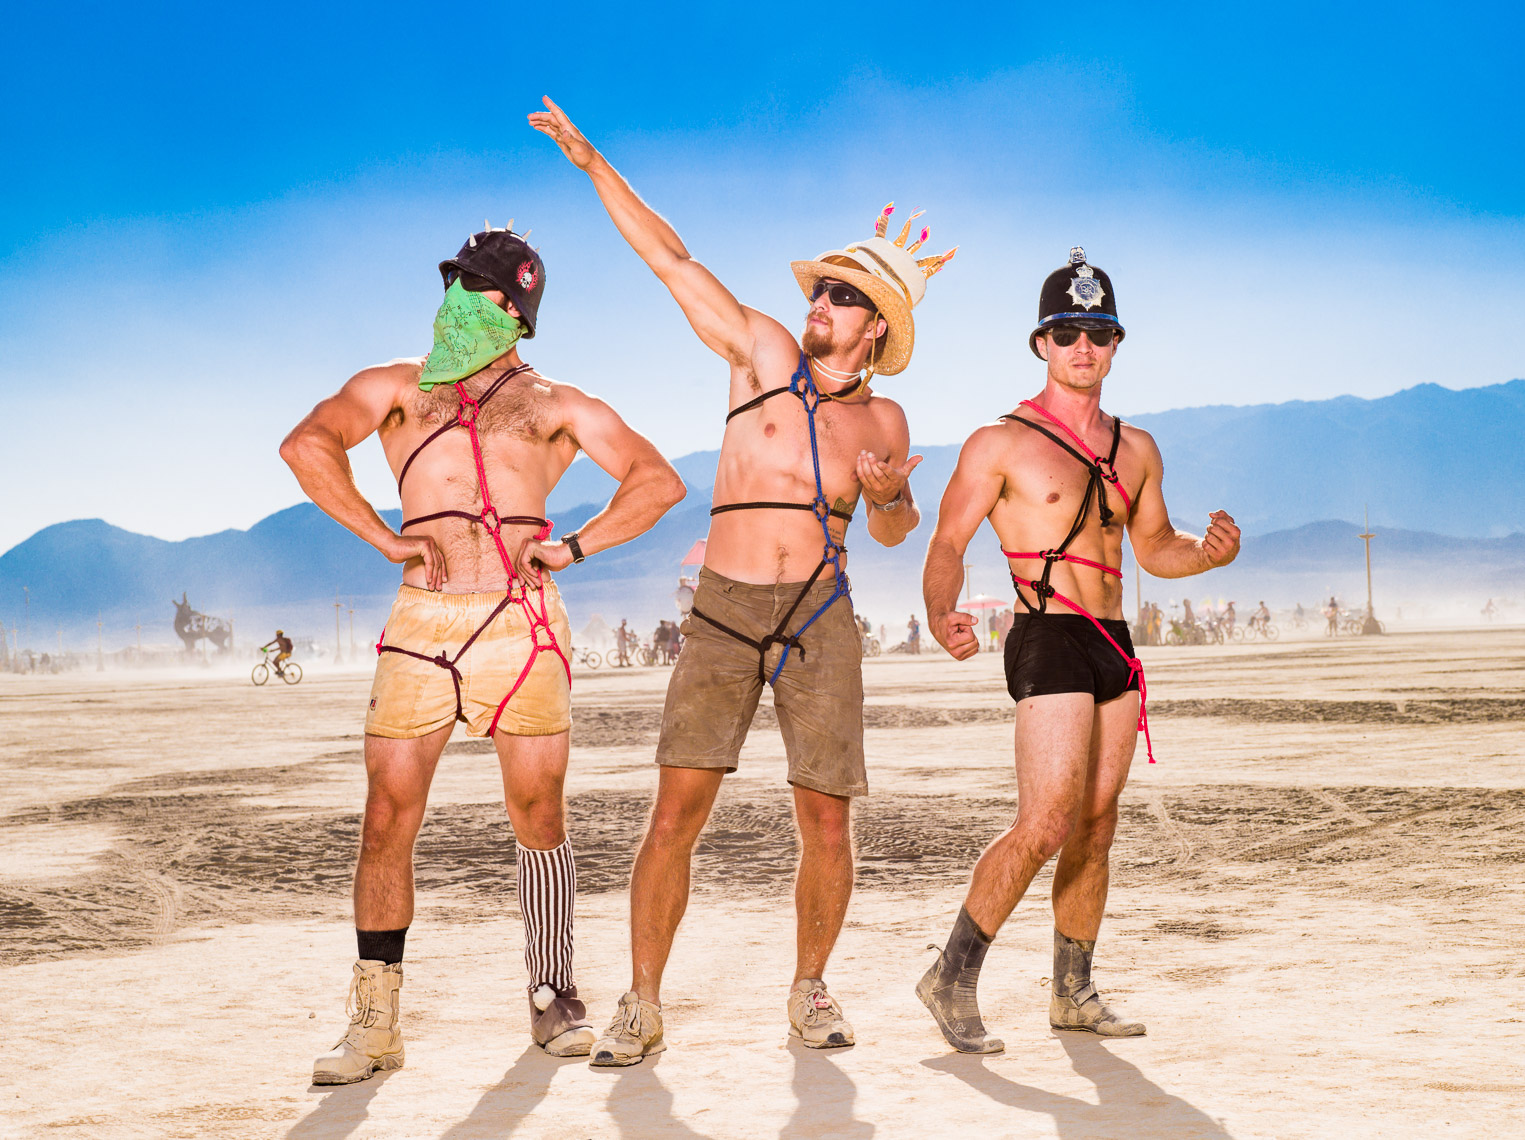 Eric_Schwabel-Burning Man 2013_008461